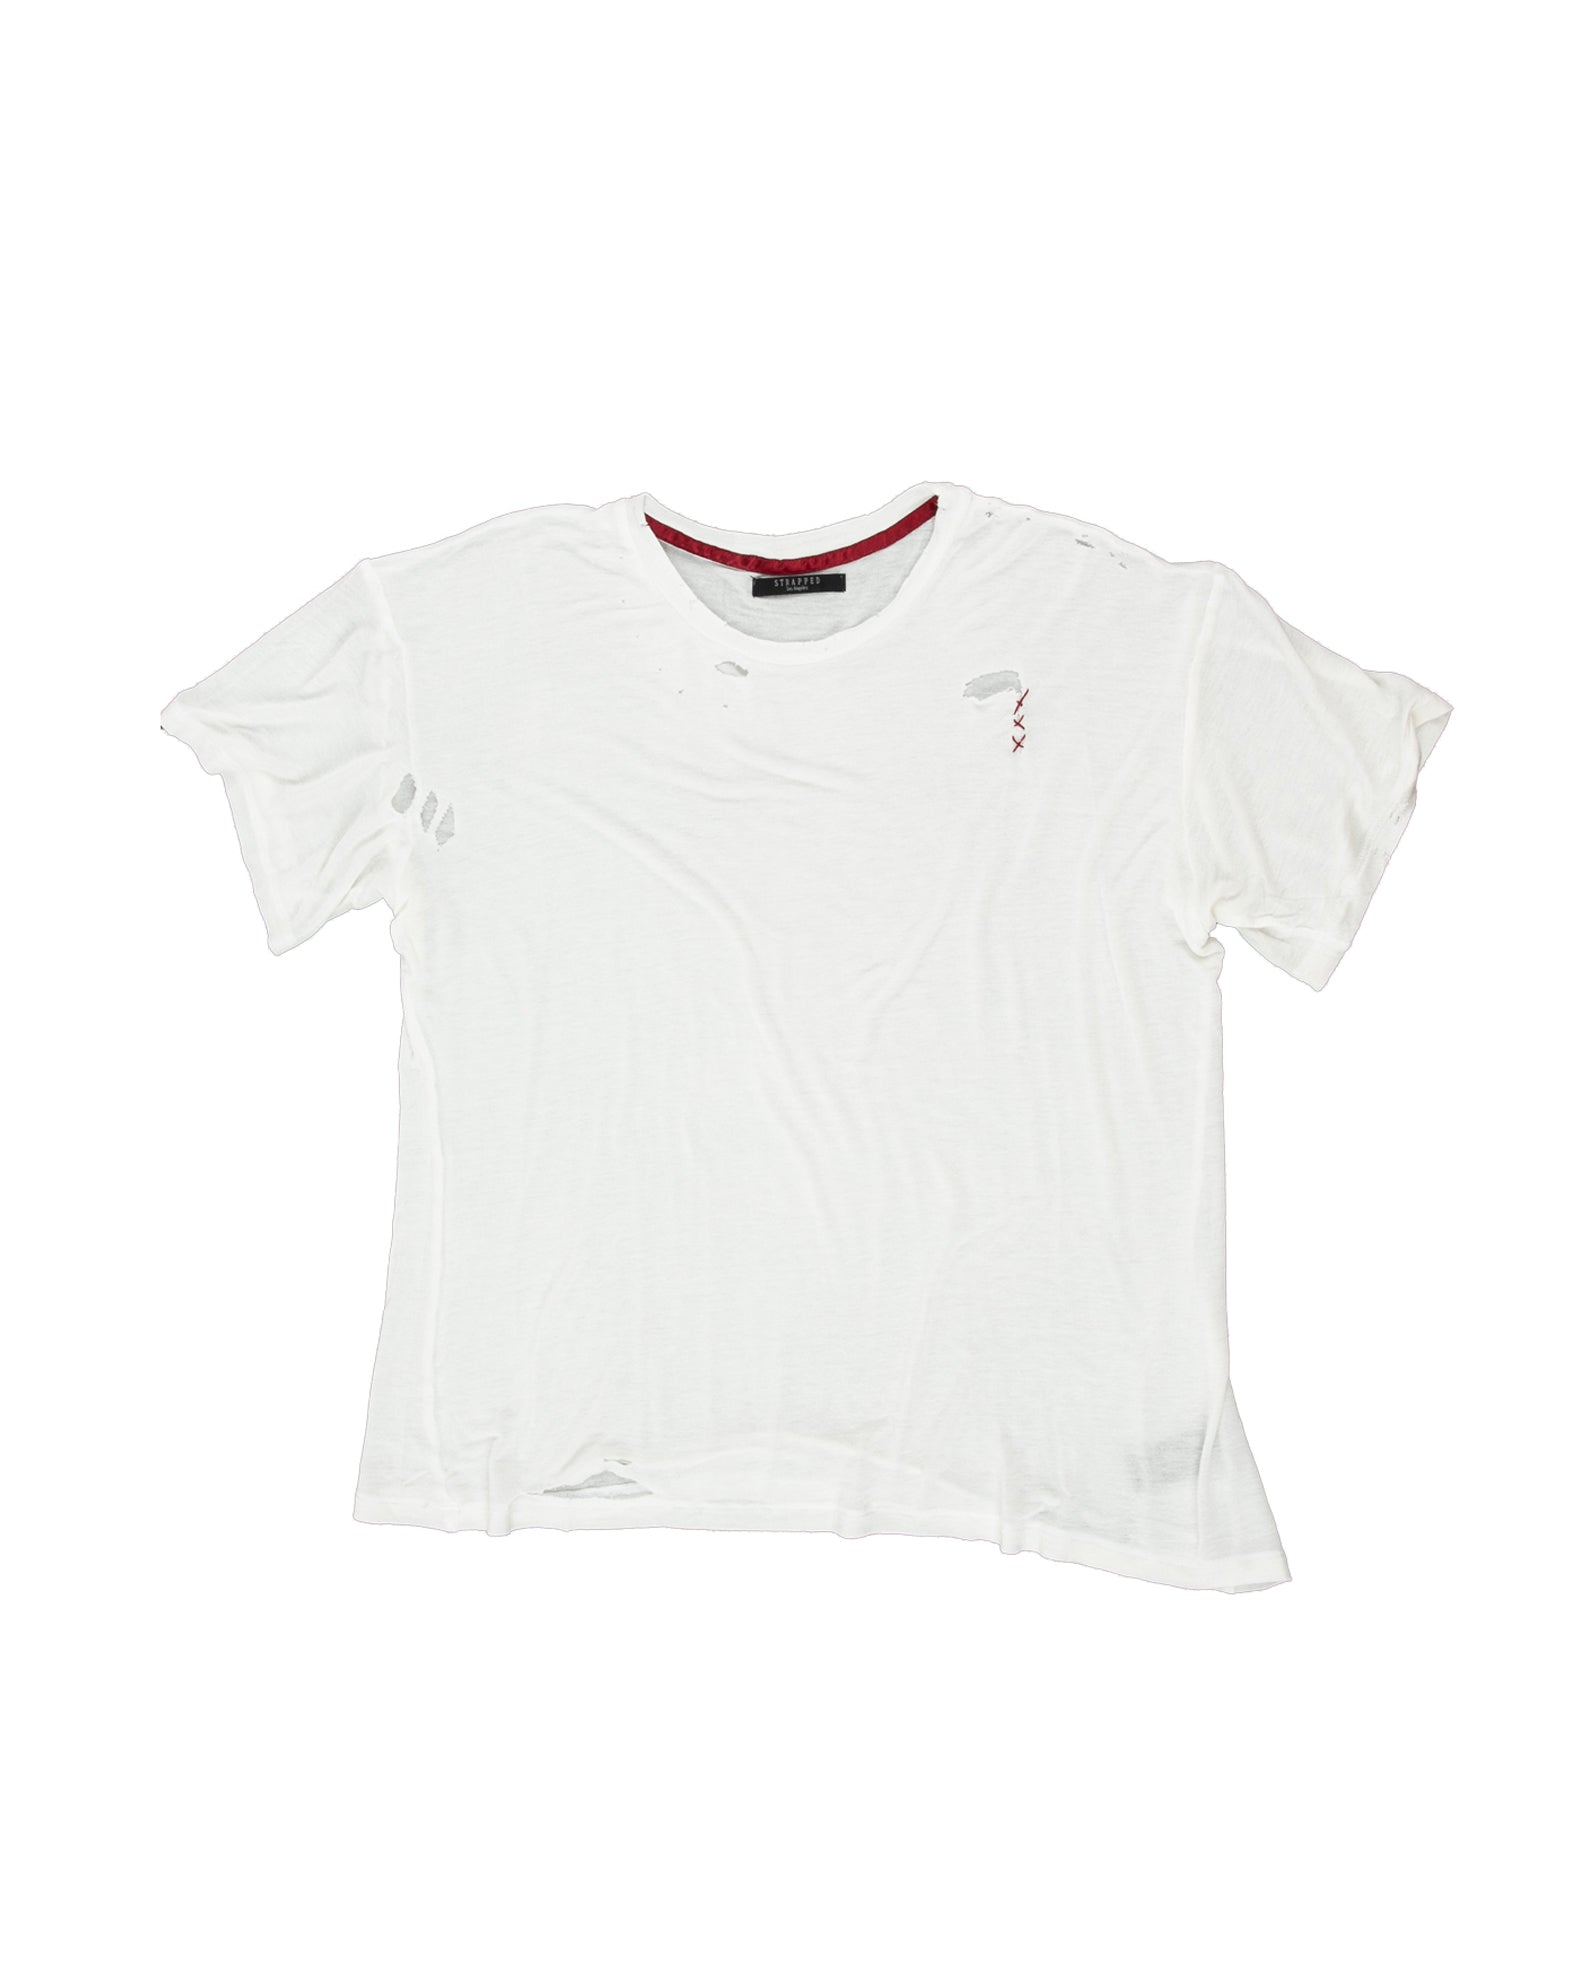 Front of Hand-stitched Tee in Ivory